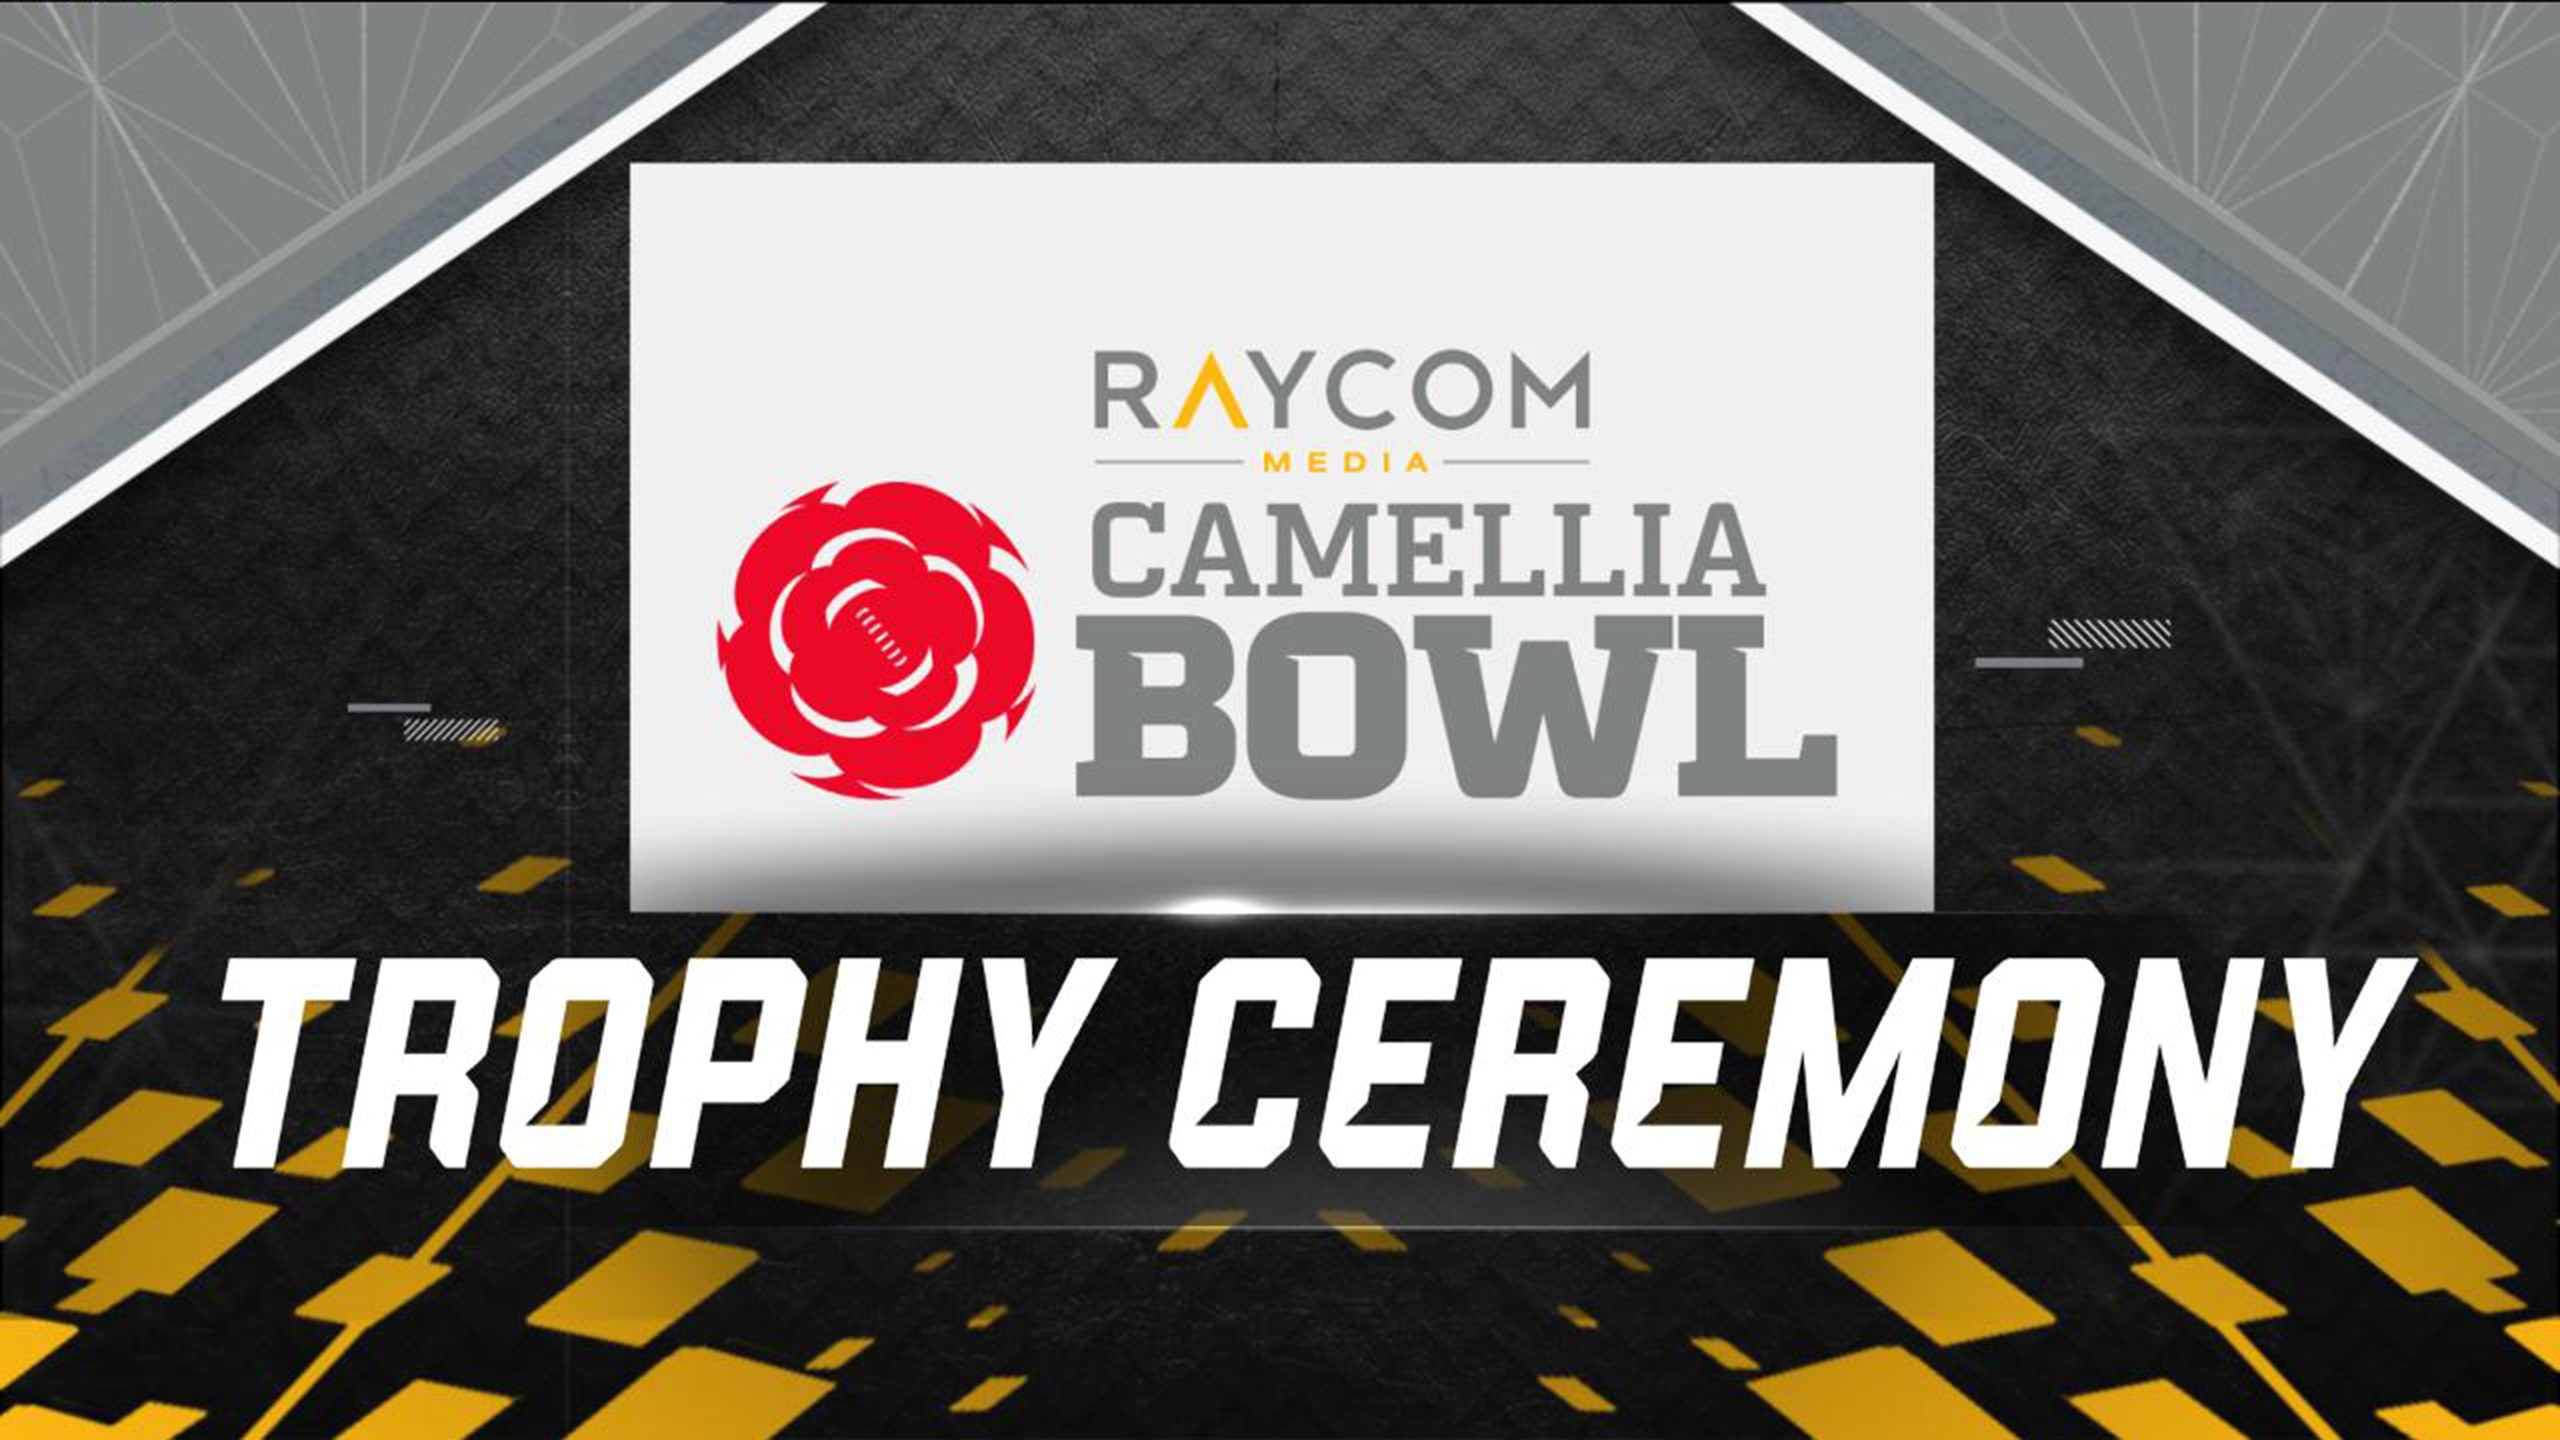 Raycom Media Camellia Bowl Trophy Ceremony Presented by Capital One